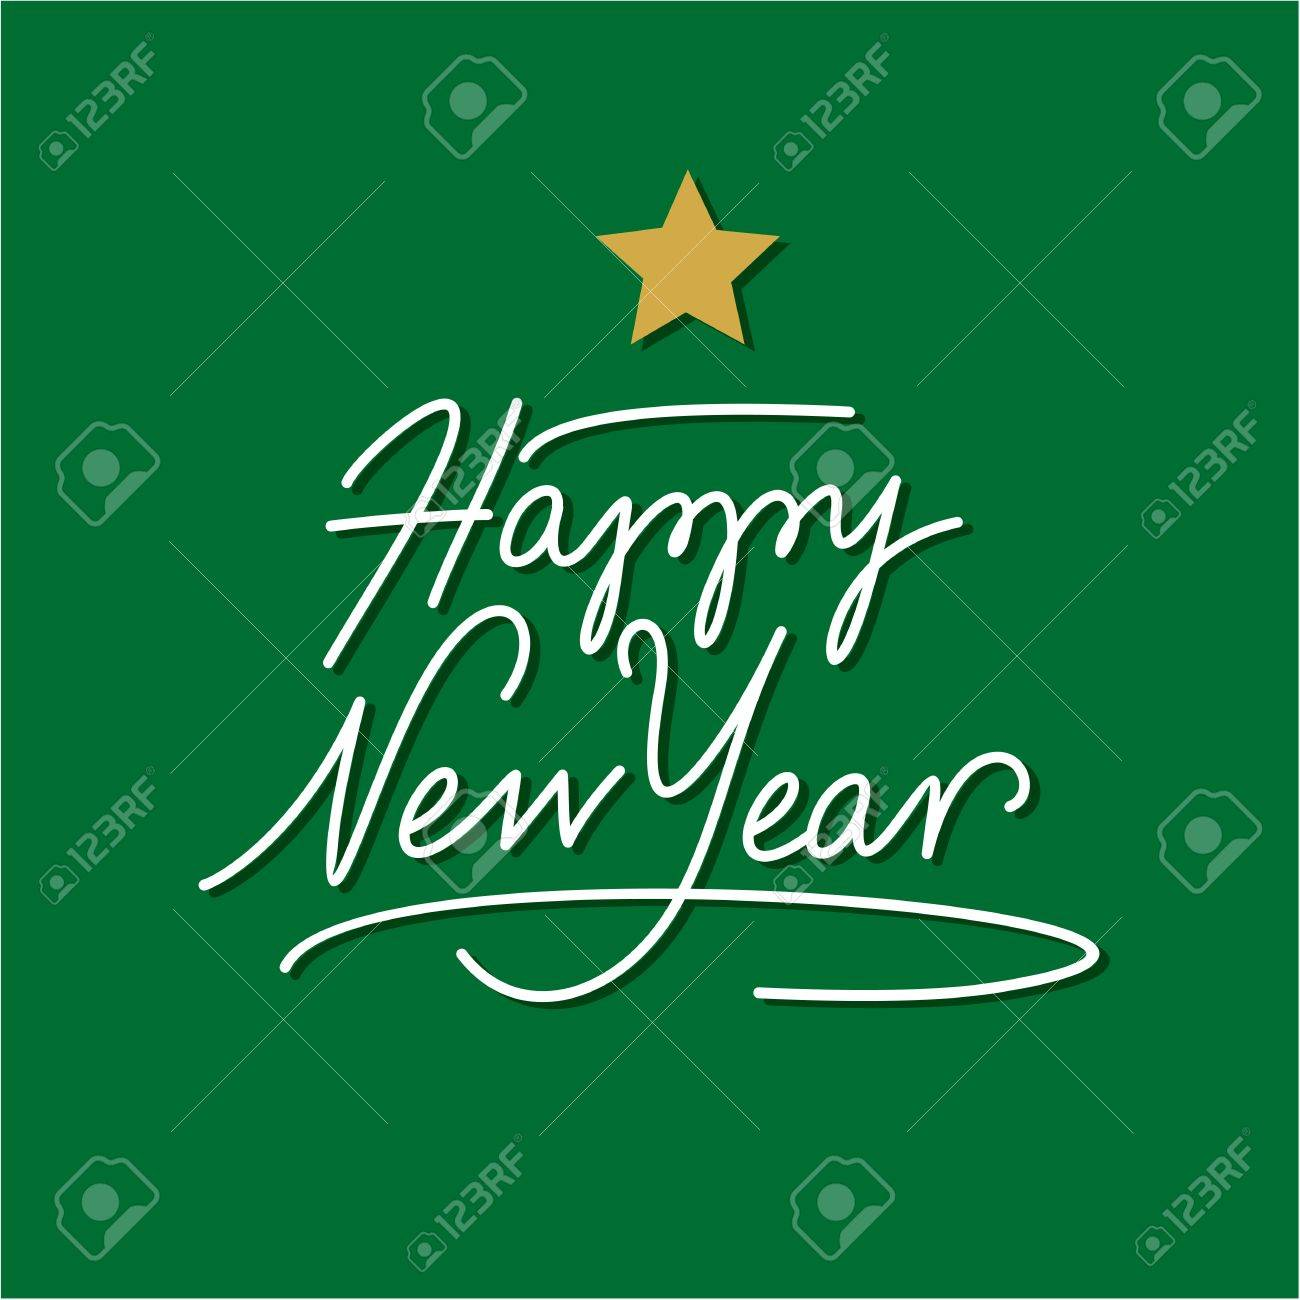 happy new year hand lettering with gold star Stock Vector - 16568699